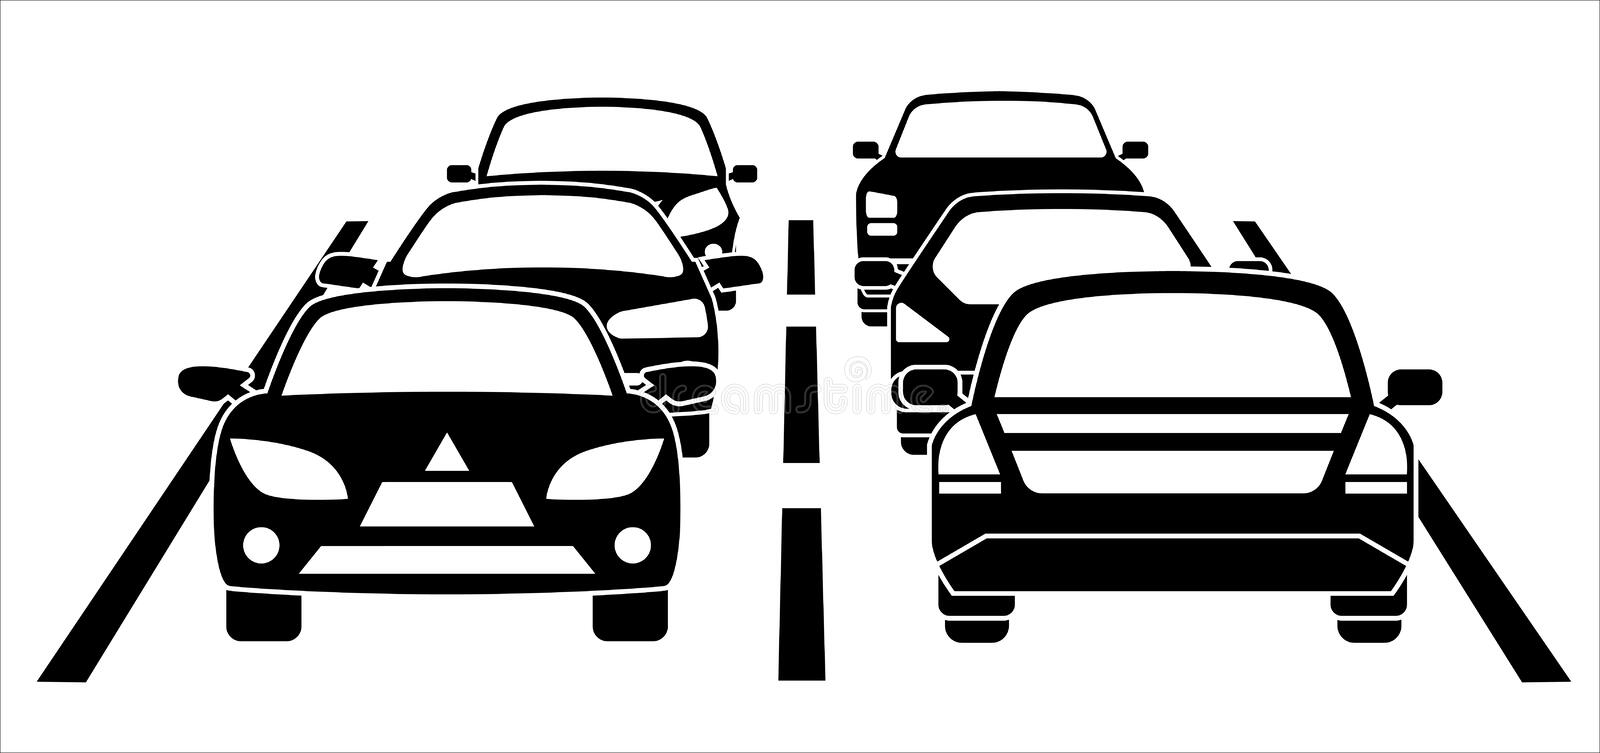 A traffic jam on the road vector illustration